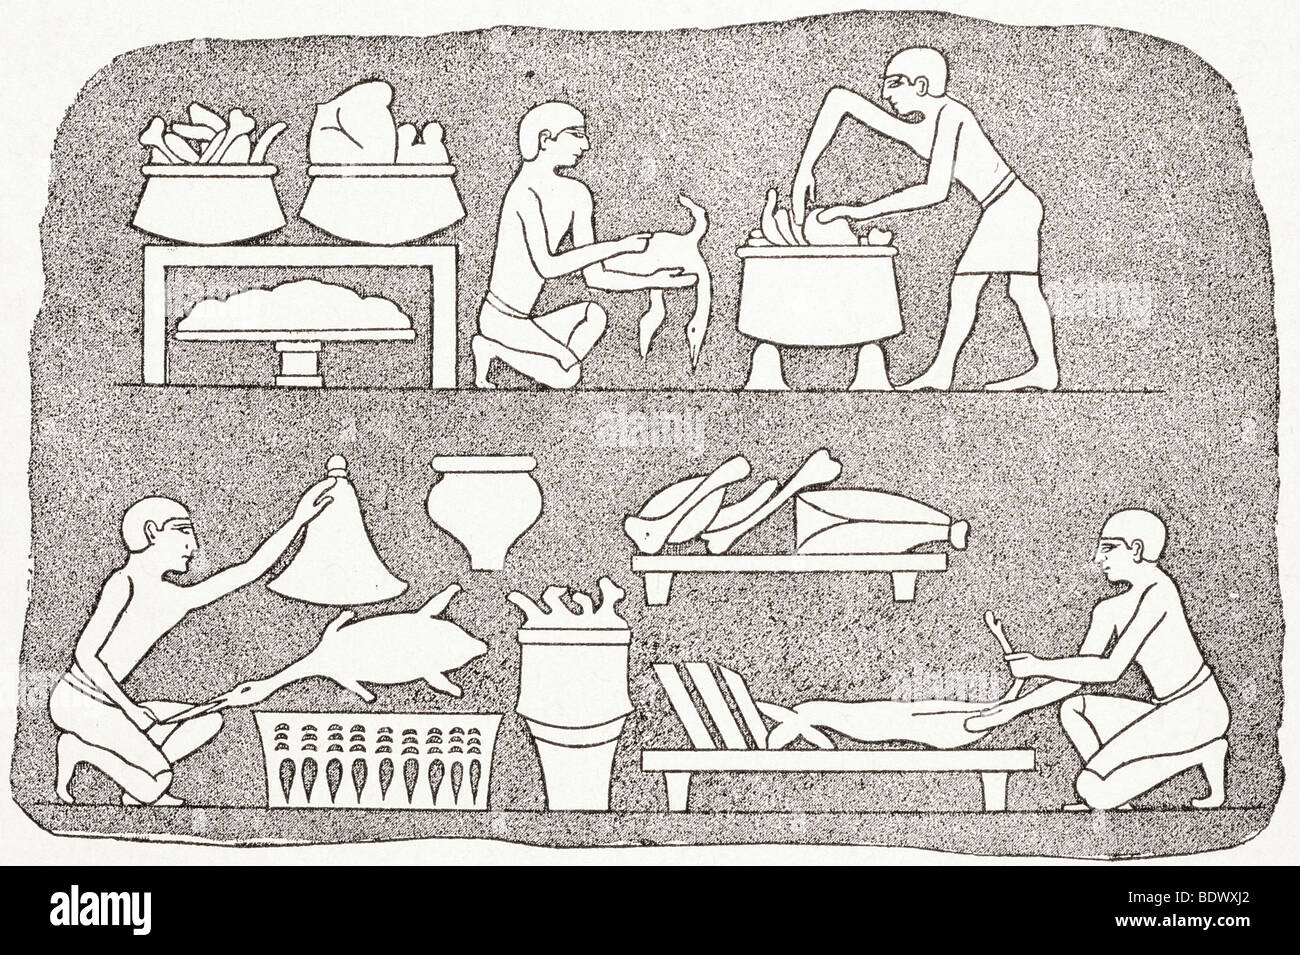 Egyptian cookery showing processes of preparing food - Stock Image